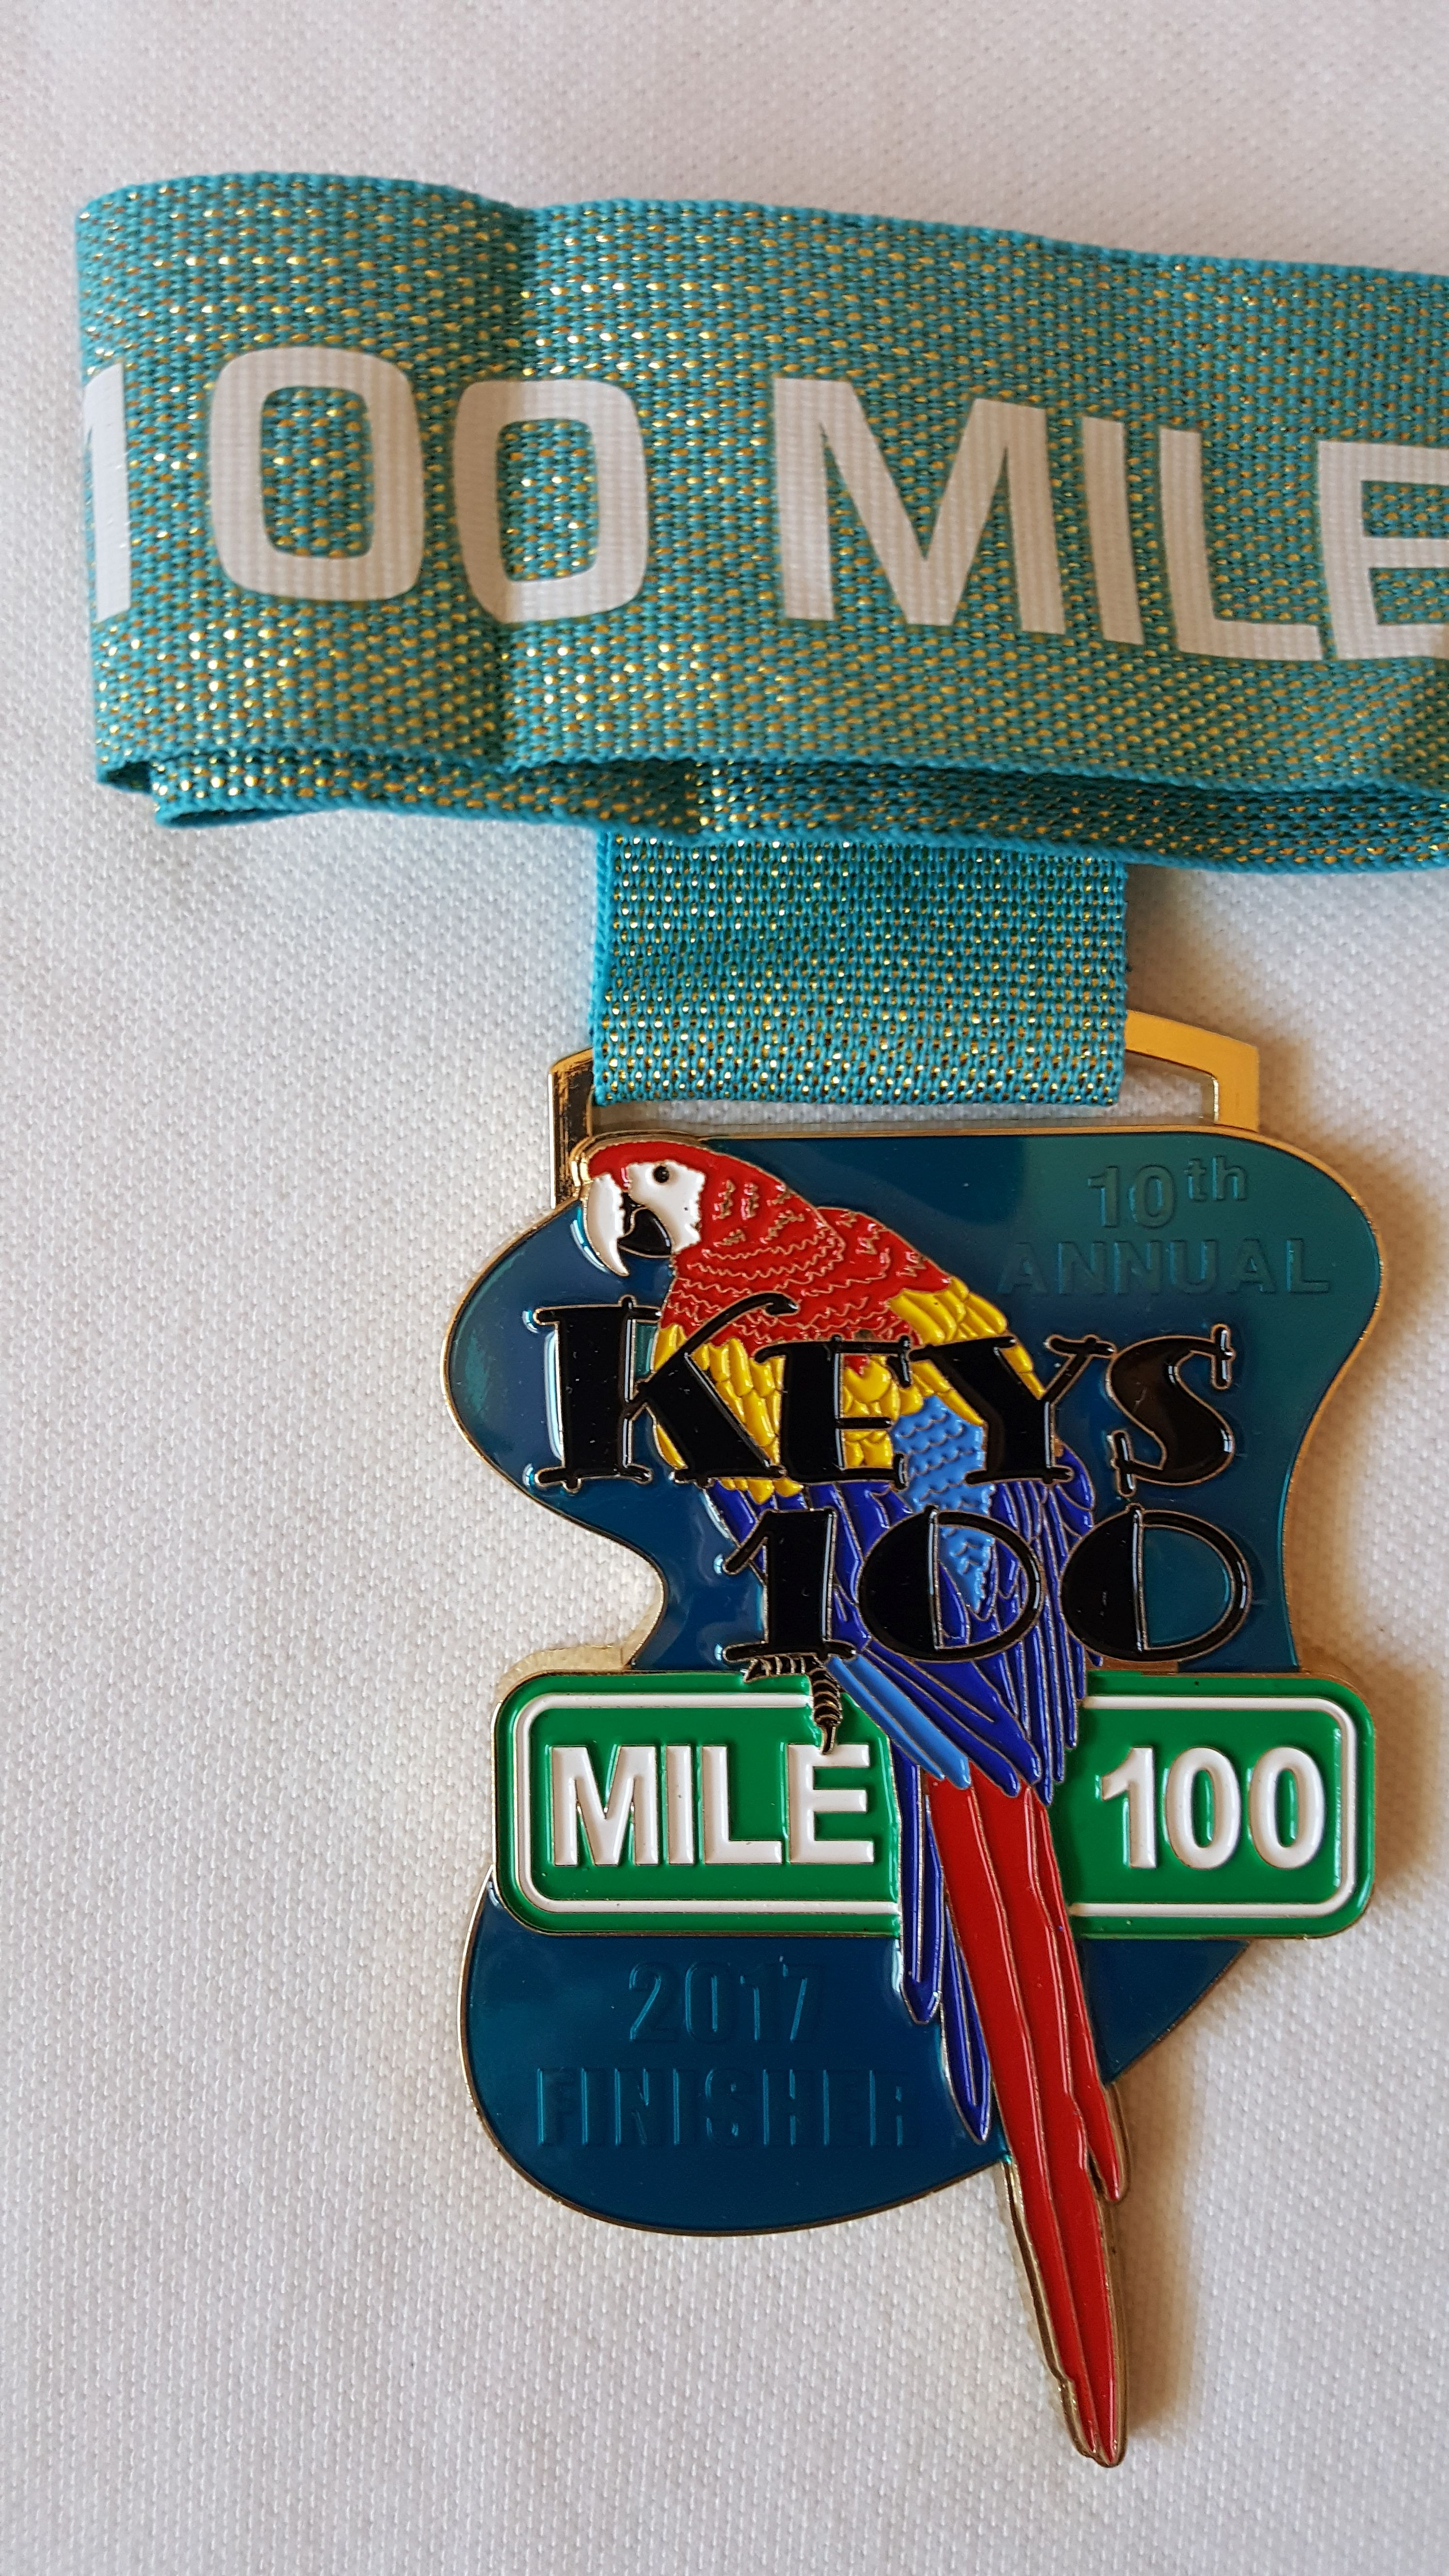 2017 KEYS100 finisher medal